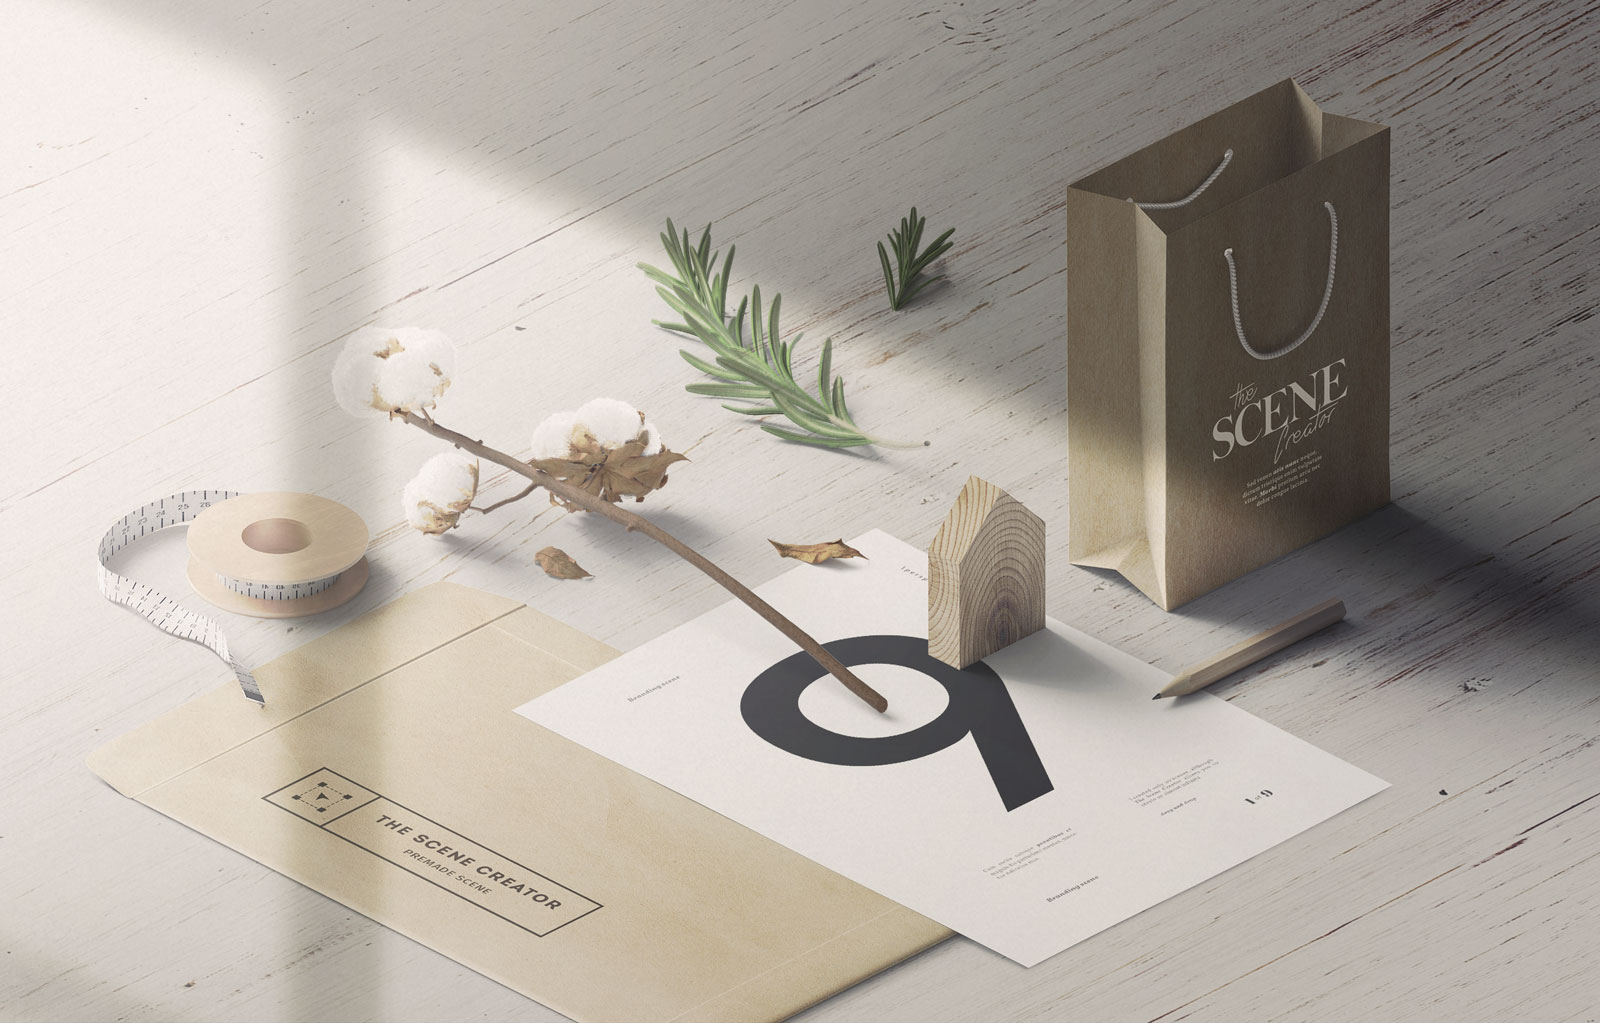 Free-Stationery-Perspective-Scene-Creator-PSD-Mockup-2